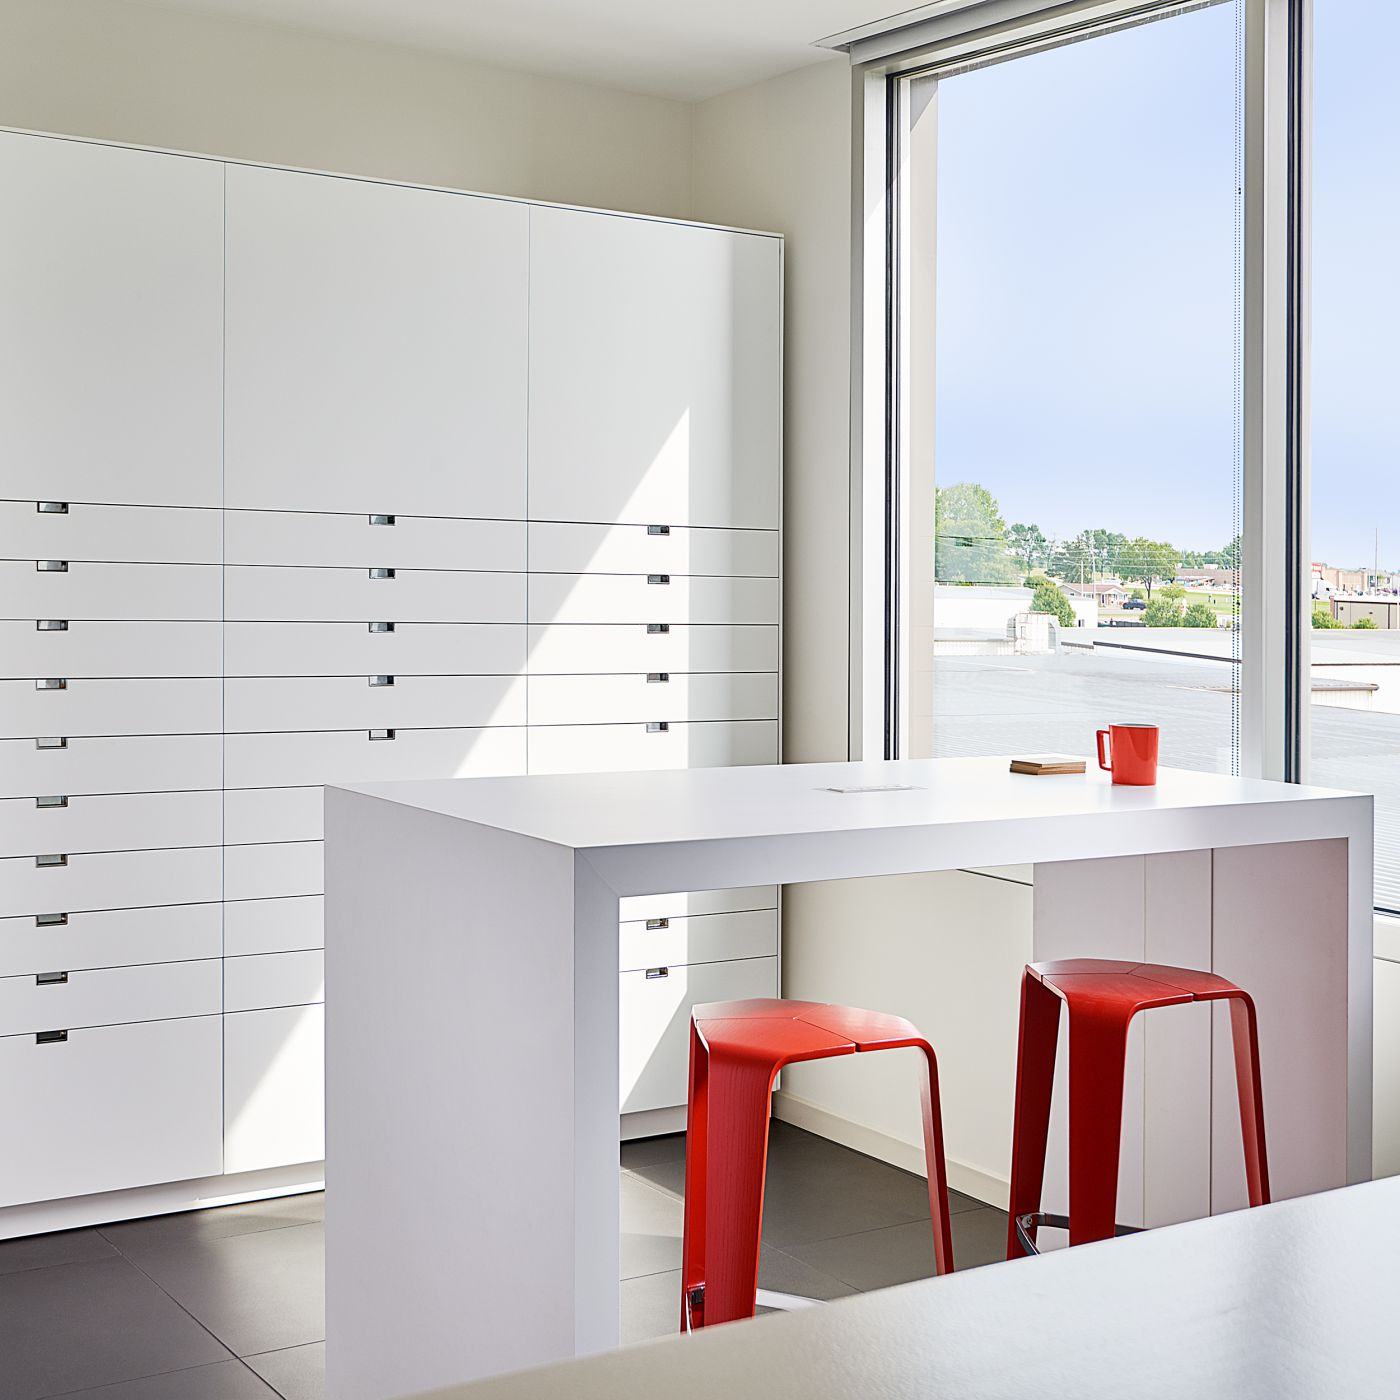 Our sample room features custom LEX storage and HUGO table in Designer White.